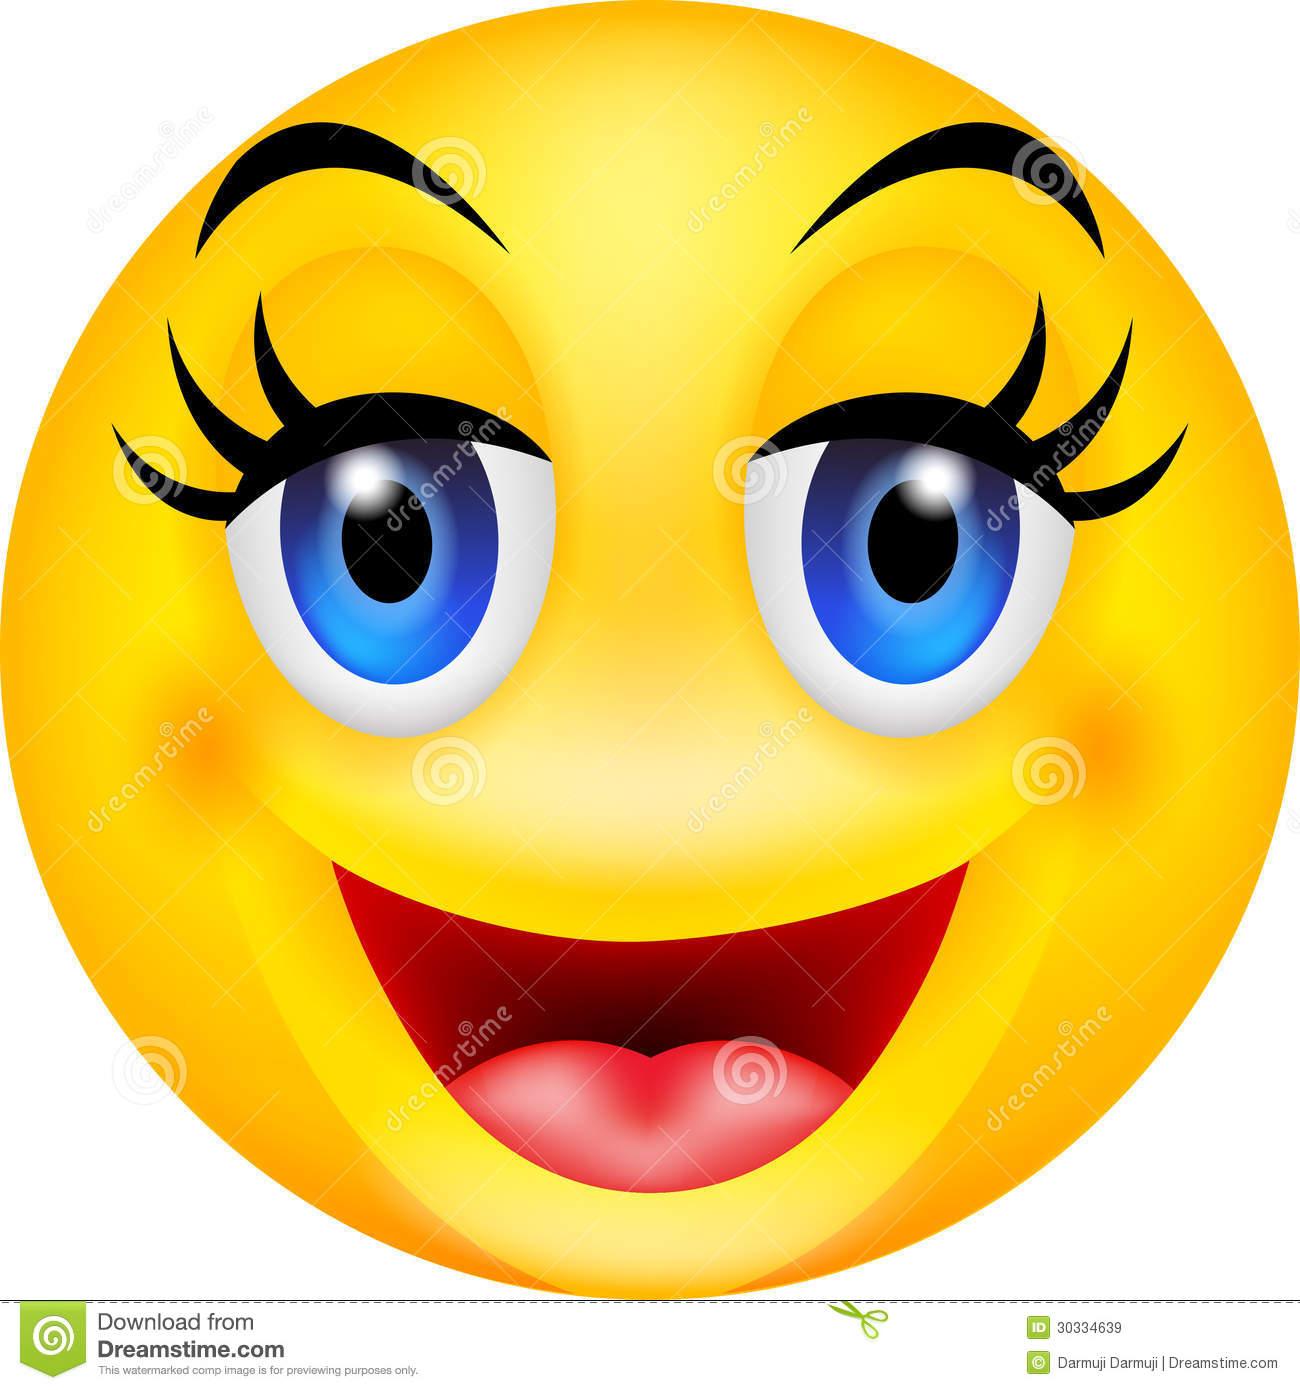 Funny Smile Emoticon Royalty Free Stock Images   Image  30334639